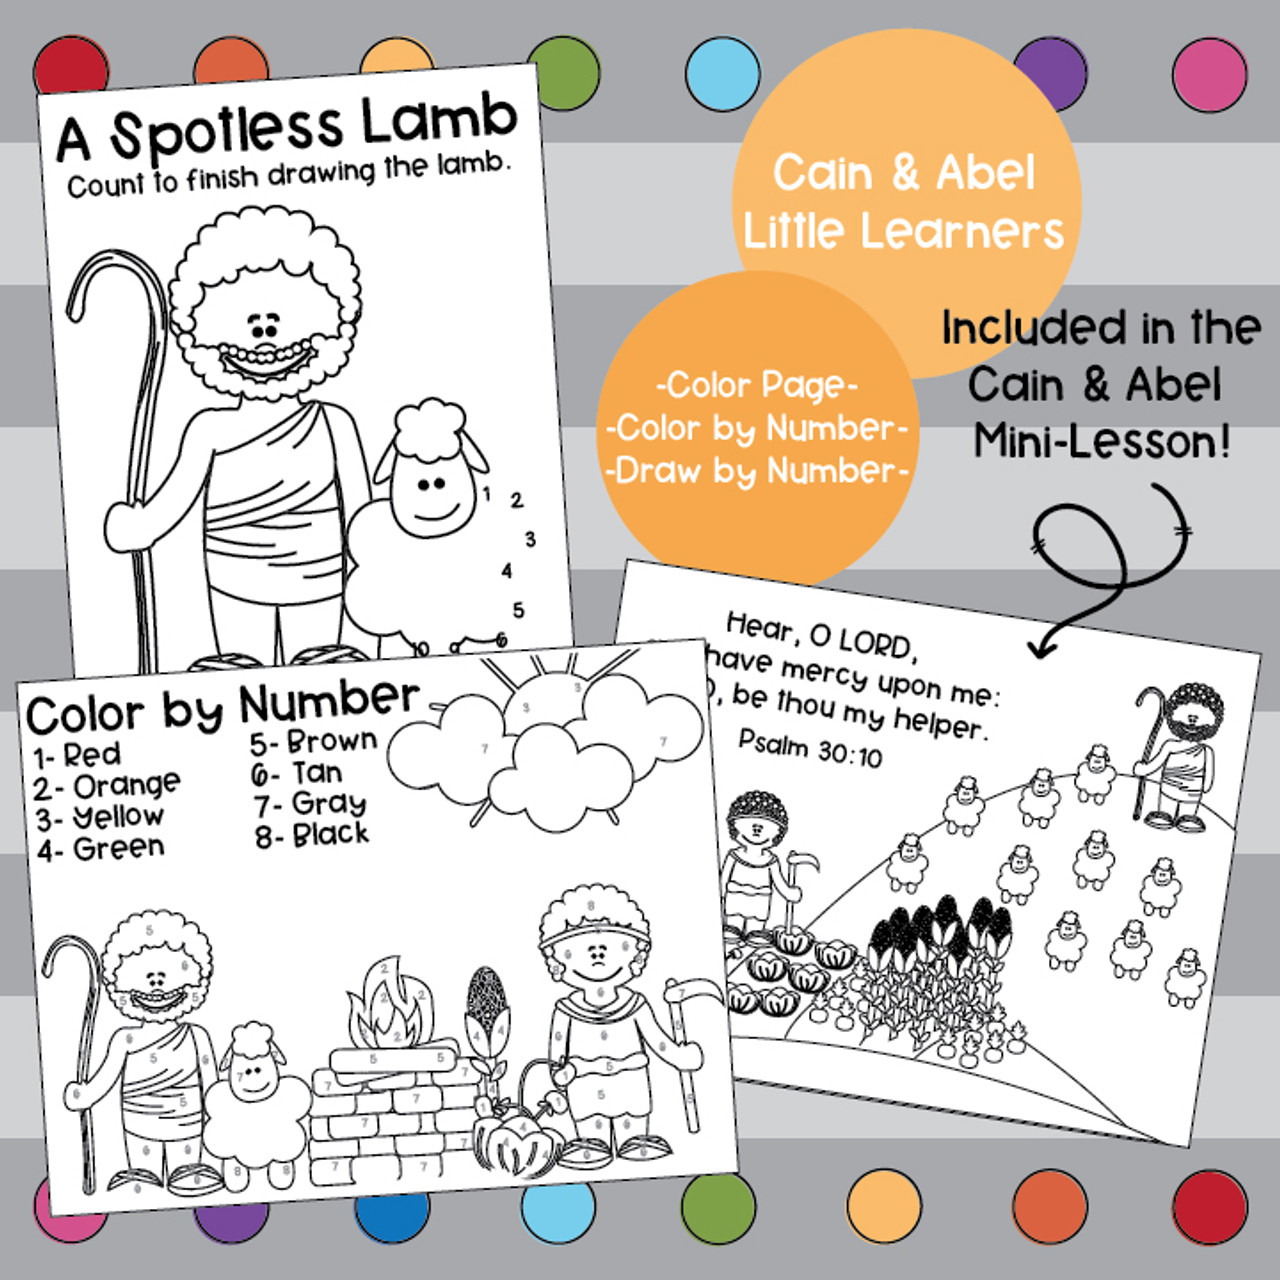 Cain and Abel Activity Pack- Little Learners Bible Lesson & Activity Packet